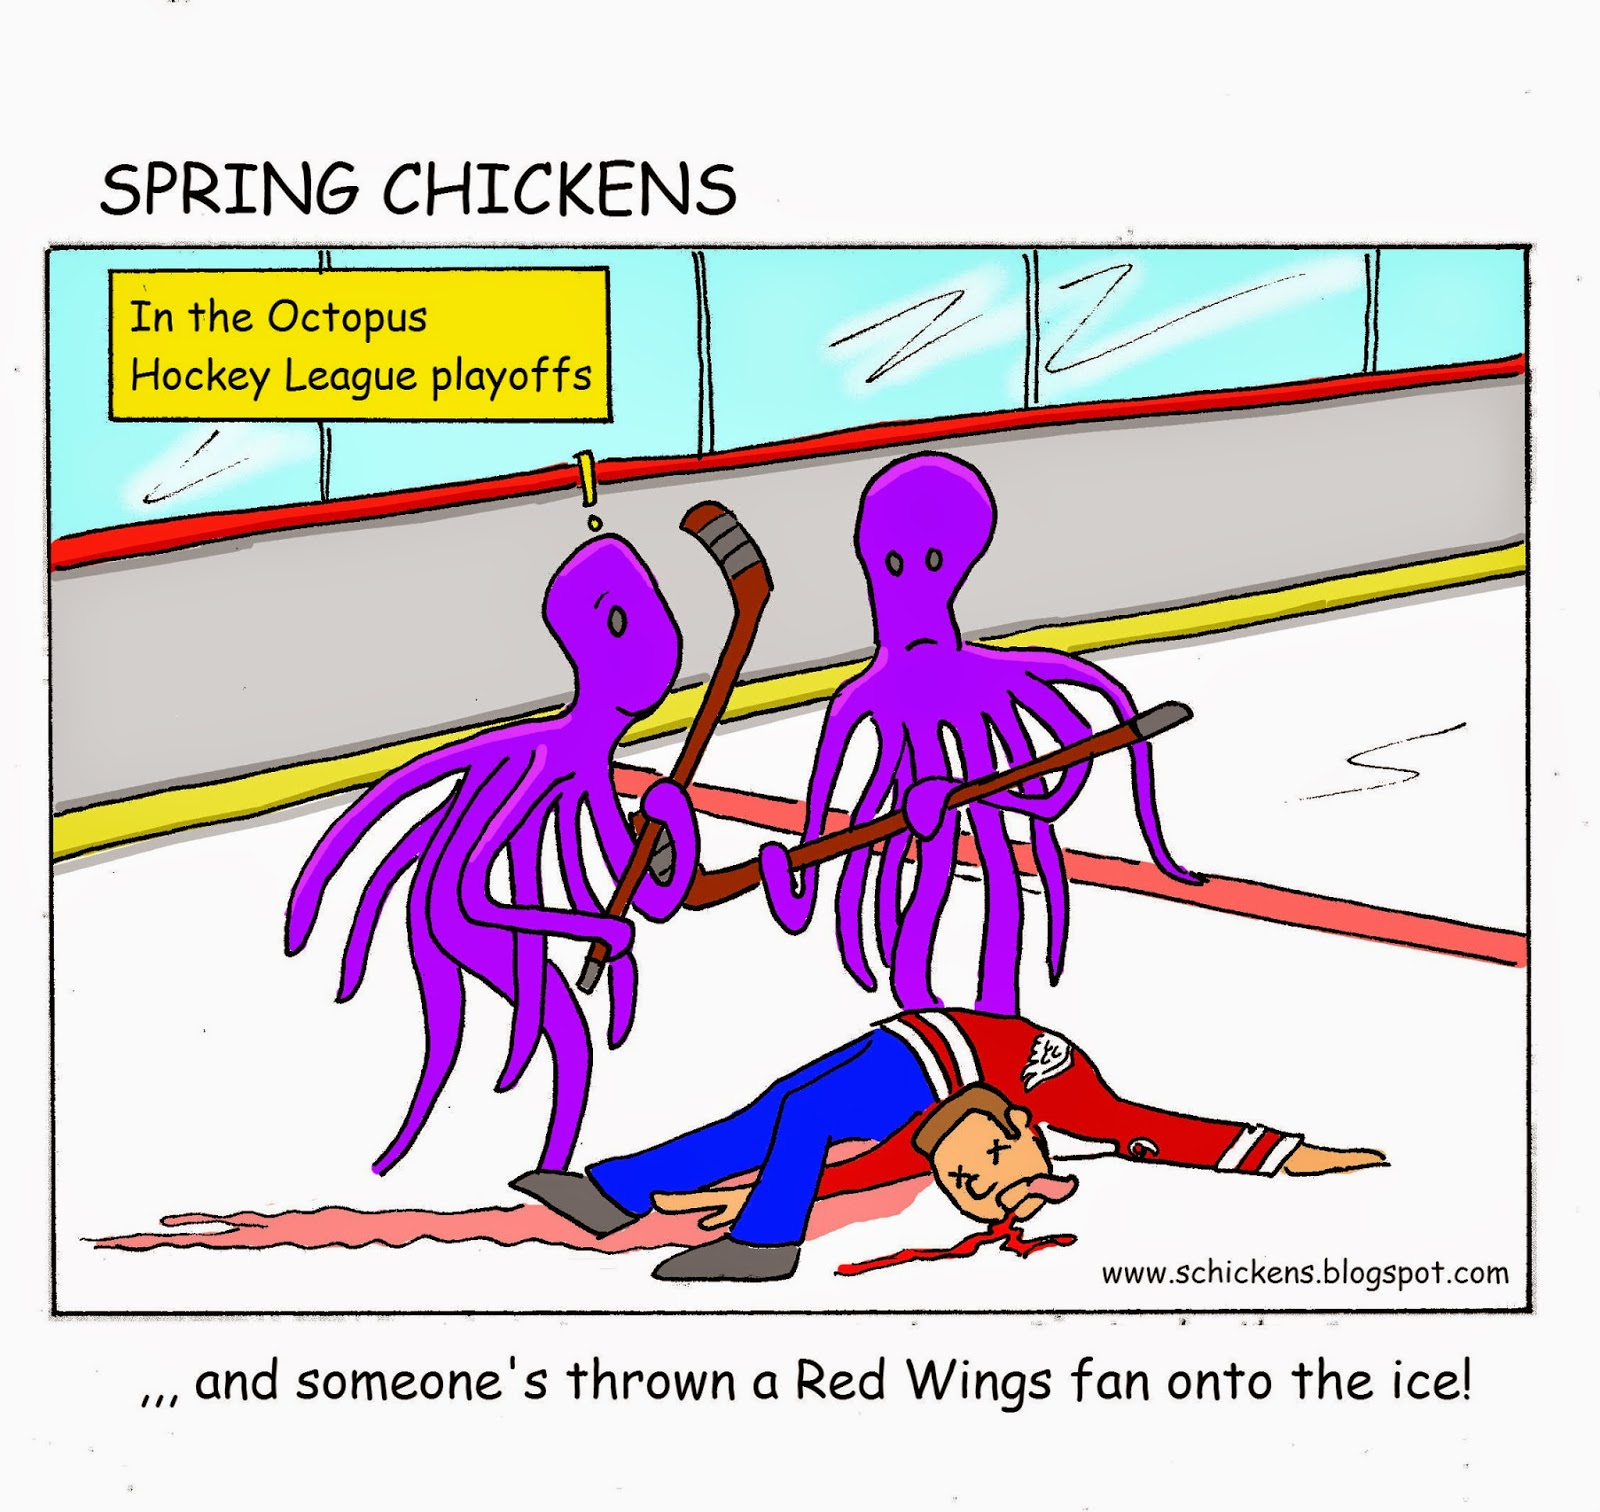 Spring chickens octopus hockey league the common refrain around the nhl is what a classy organization the detroit red wings are but seriously who still murders animals stuff them in their voltagebd Images